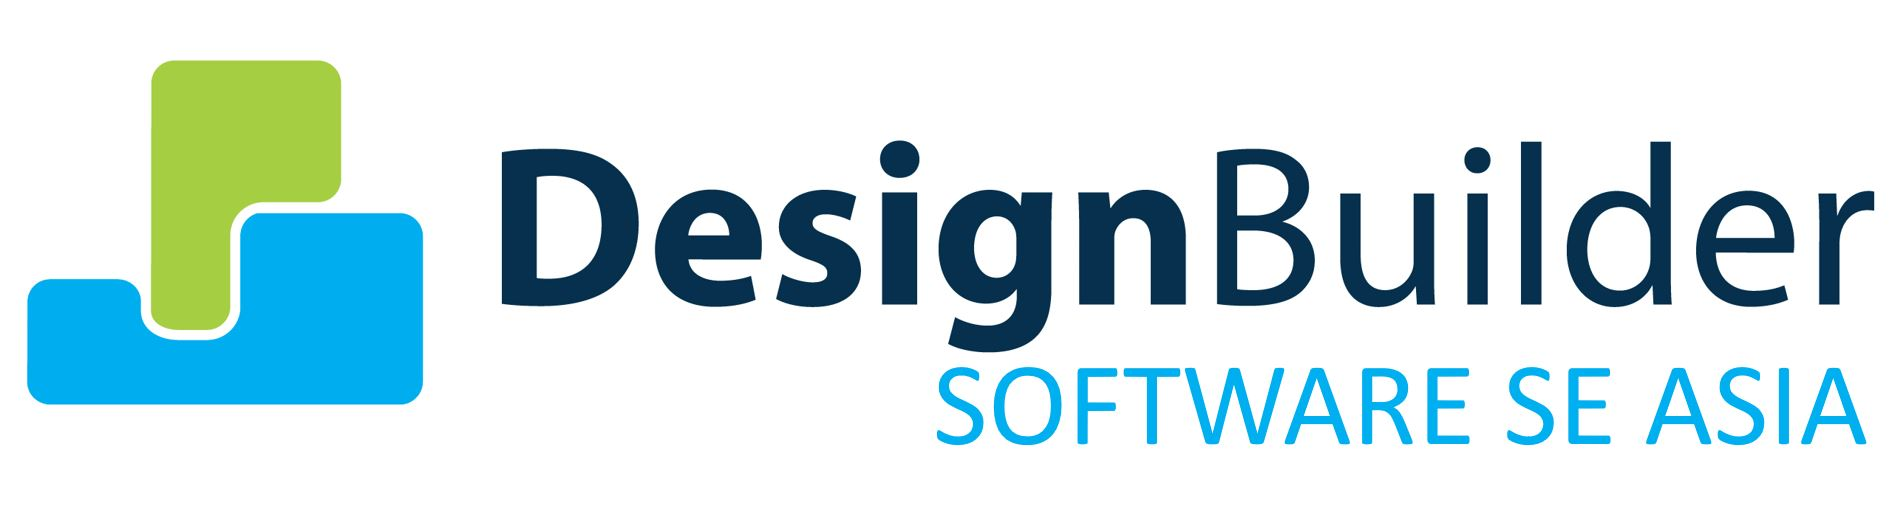 Design Builder South East Asia Official Reseller Home Page